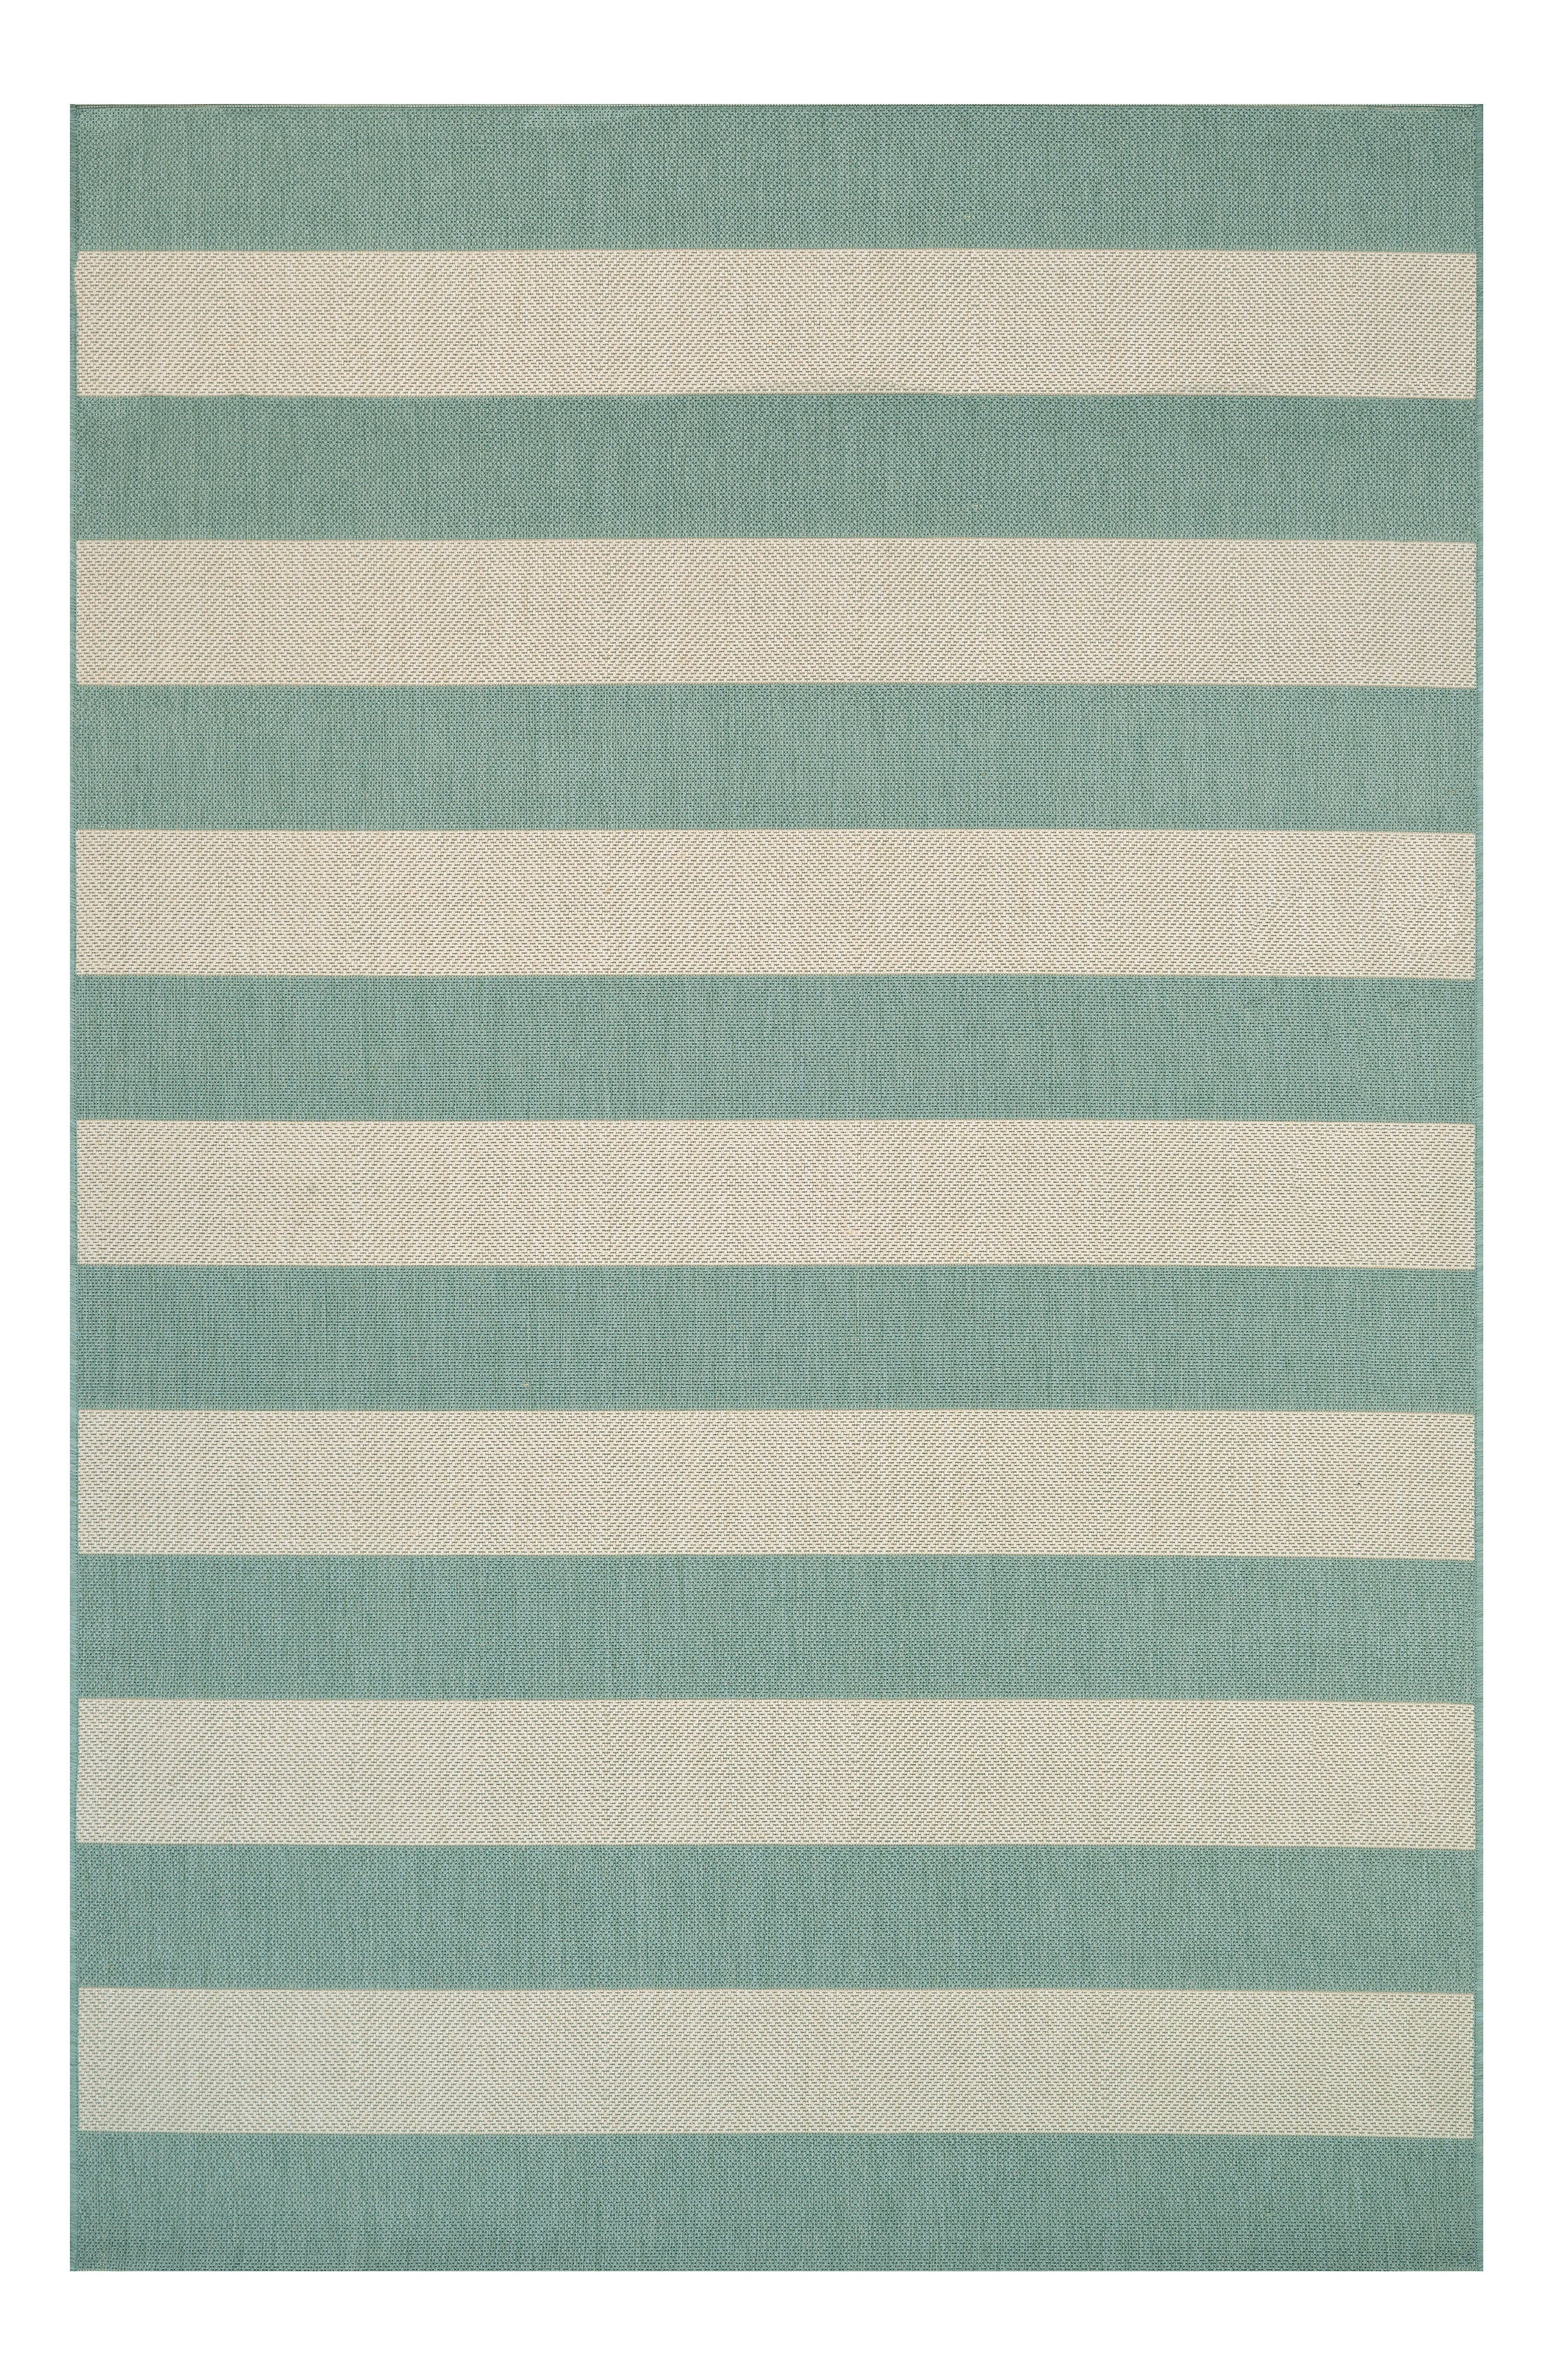 Couristan Yacht Club Indoor/Outdoor Rug